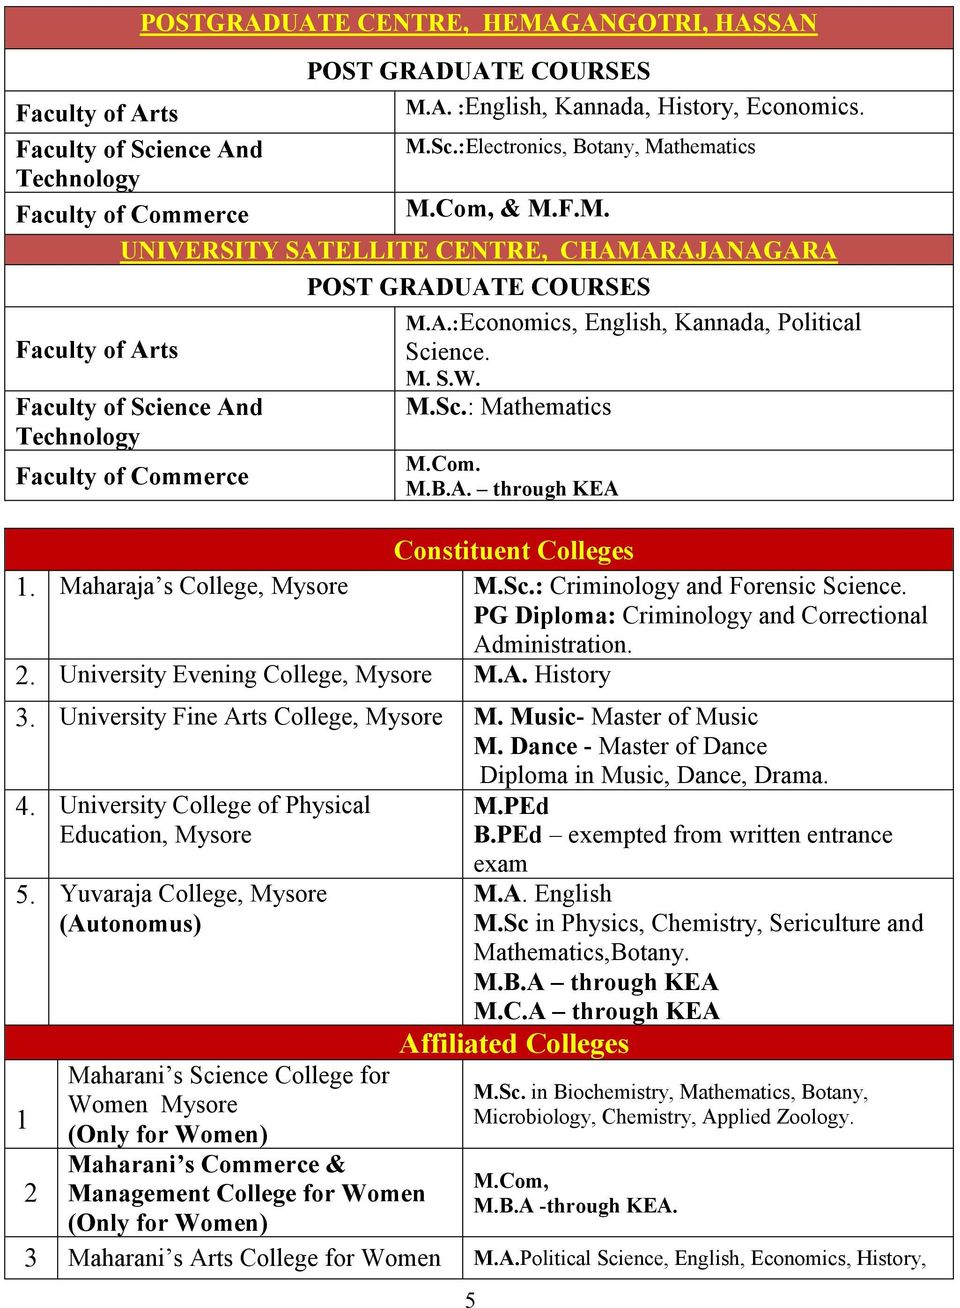 PG Diploma: Criminology and Correctional Administration. 2. University Evening College, Mysore M.A. History 3. University Fine Arts College, Mysore M. Music- Master of Music M.